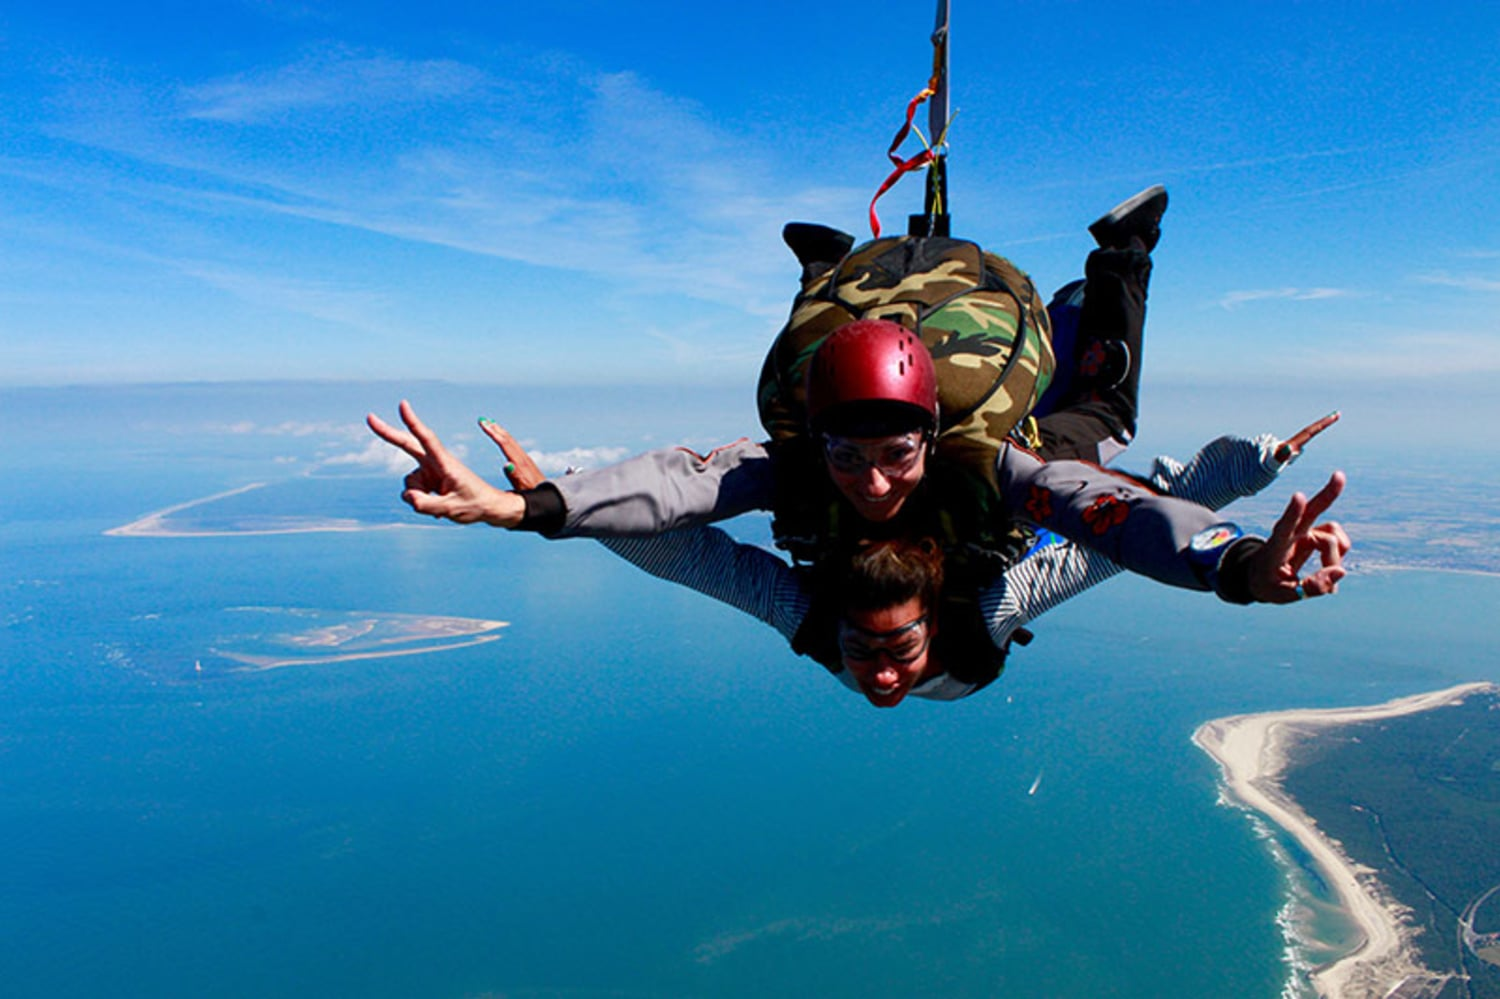 SKYDIVE SOULAC - Soulac-sur-Mer